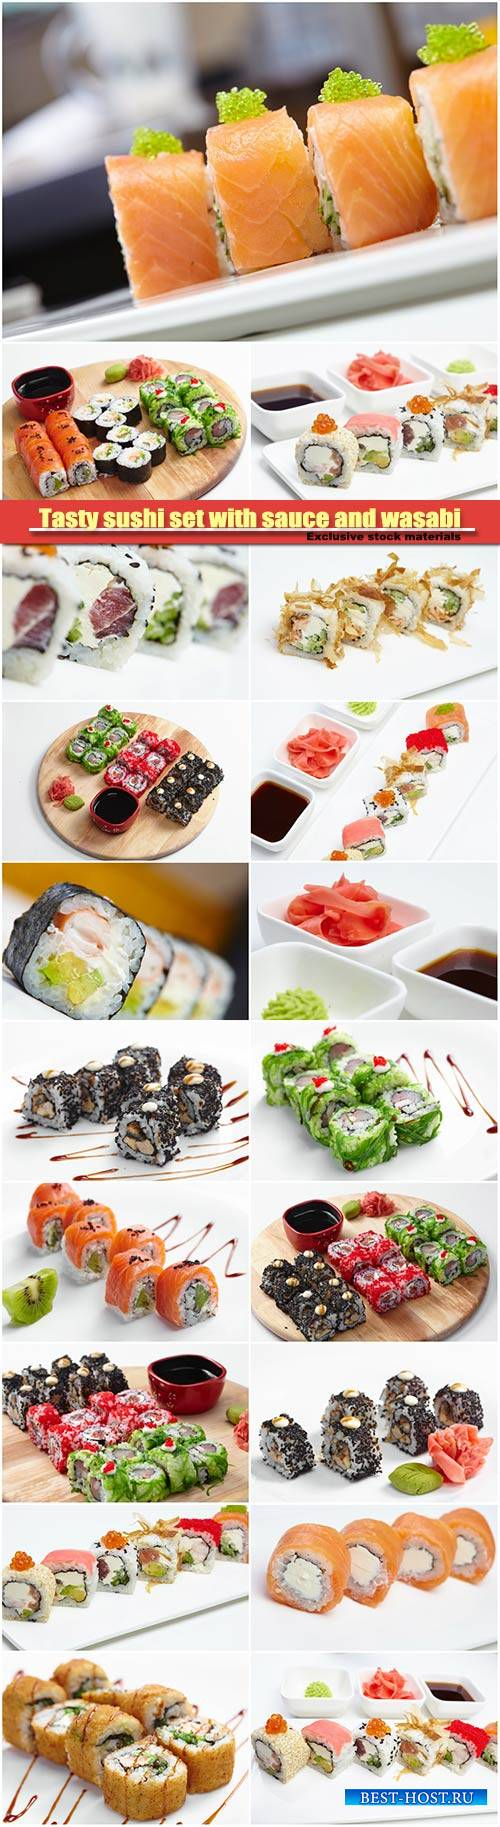 Tasty sushi set with sauce and wasabi